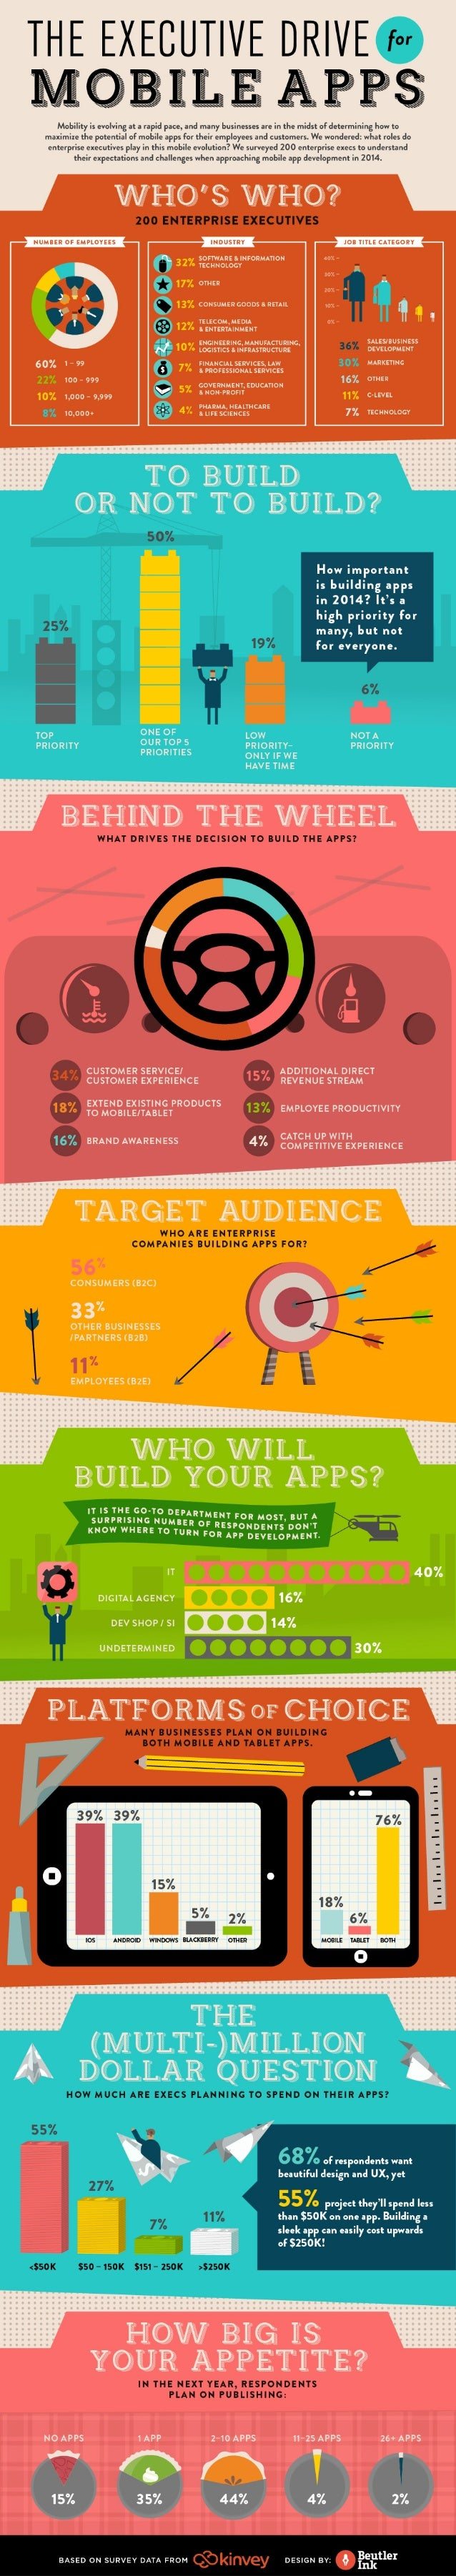 The Executive Drive for Mobile Apps